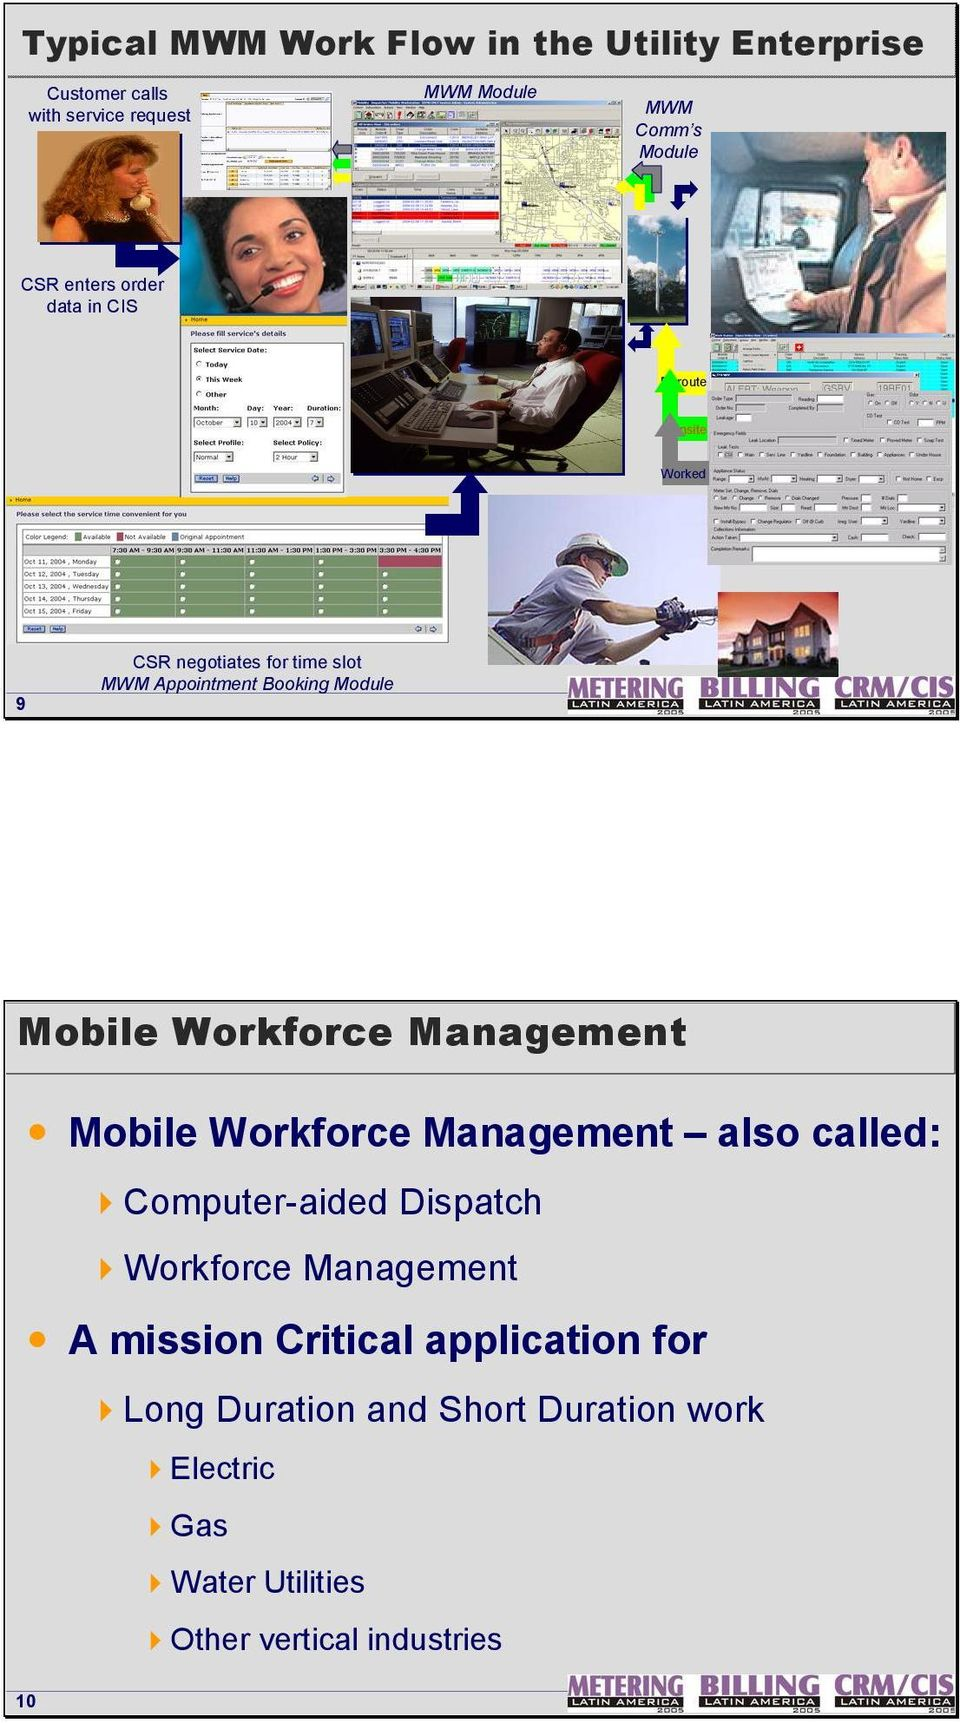 Mobile Workforce Management Mobile Workforce Management also called: 4Computer aided Dispatch 4Workforce Management A